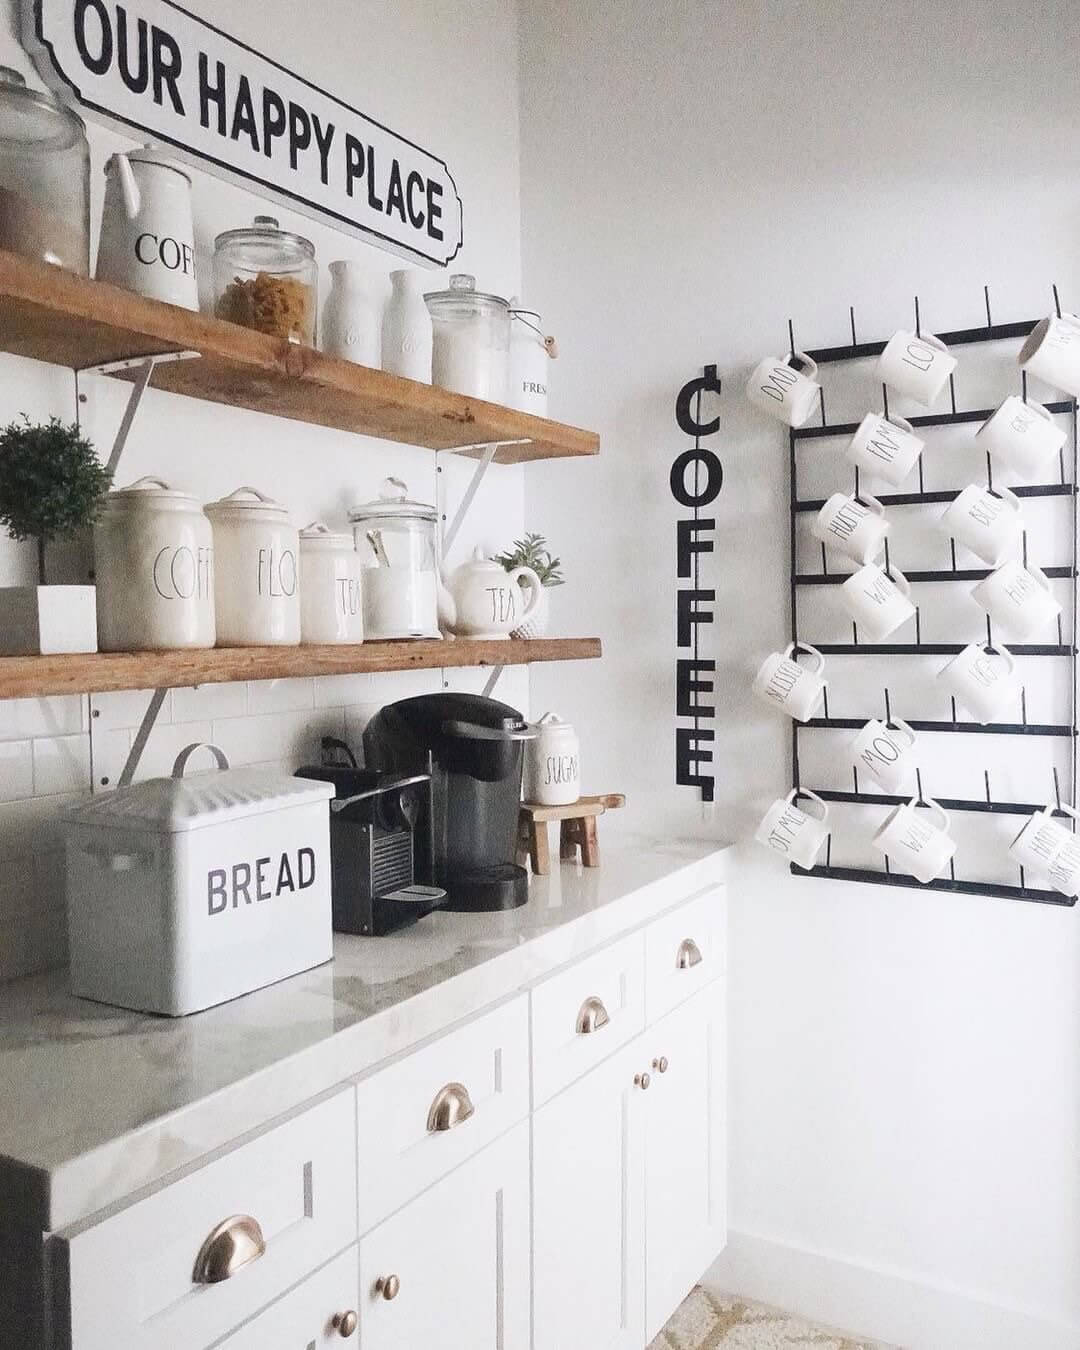 Our Happy Place Coffee Station and Mug Rack